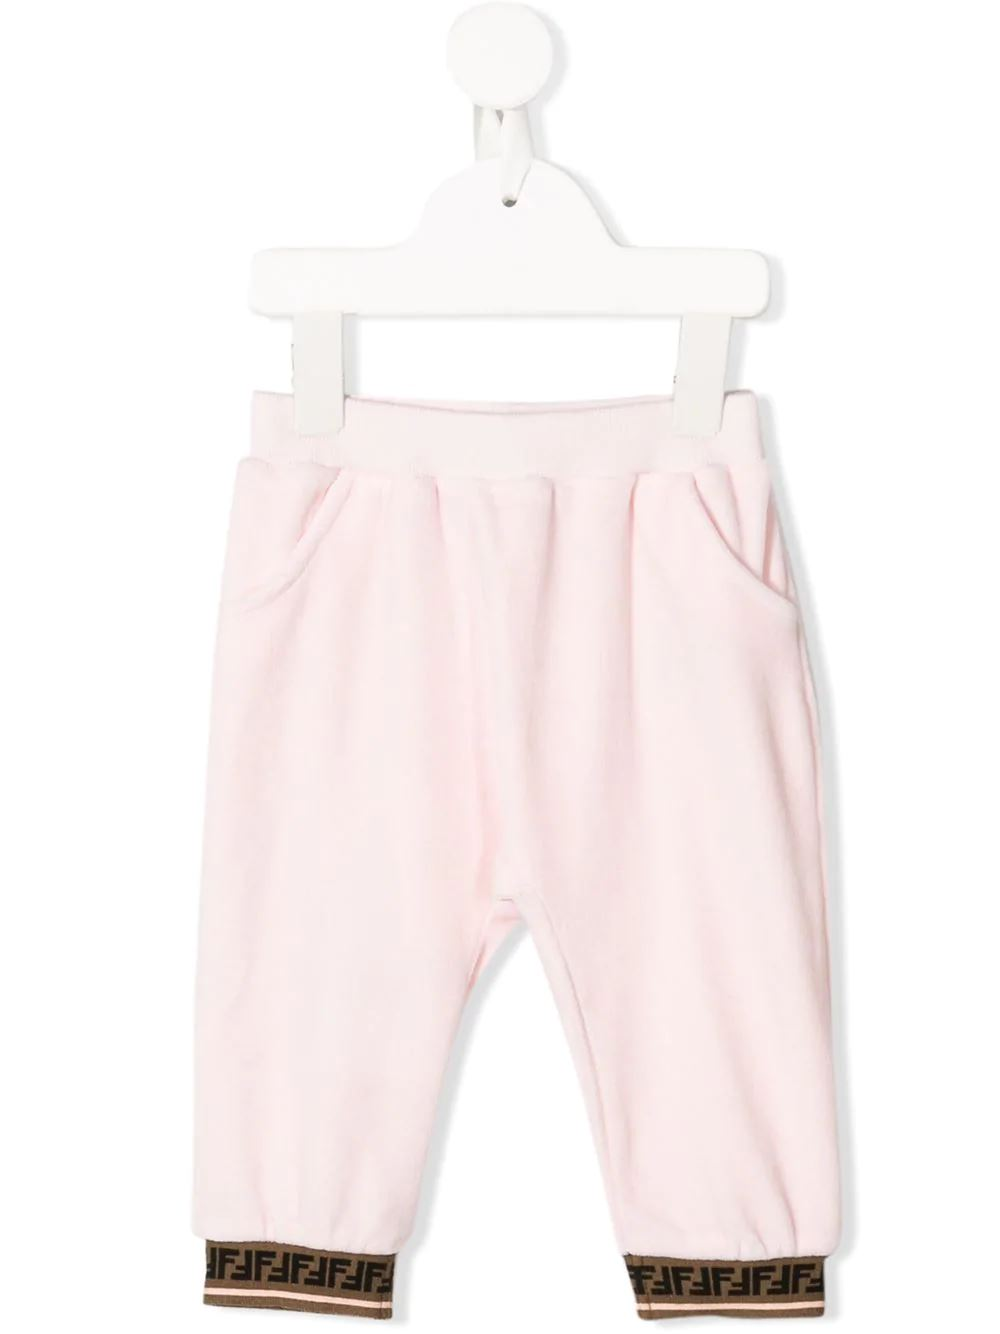 FENDI KIDS FF trim track pants pink - Maison De Fashion